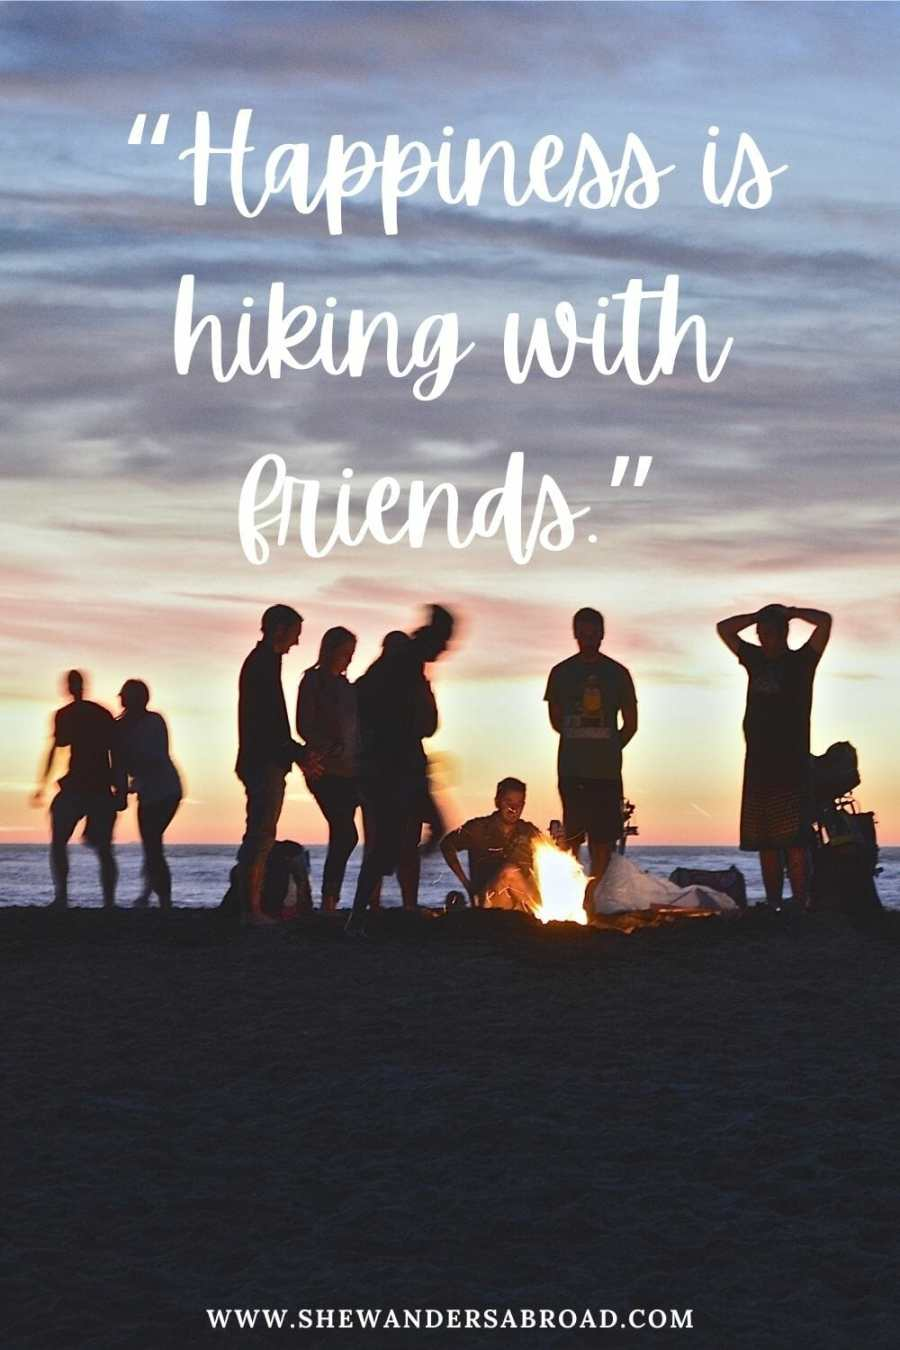 Hiking with friends captions